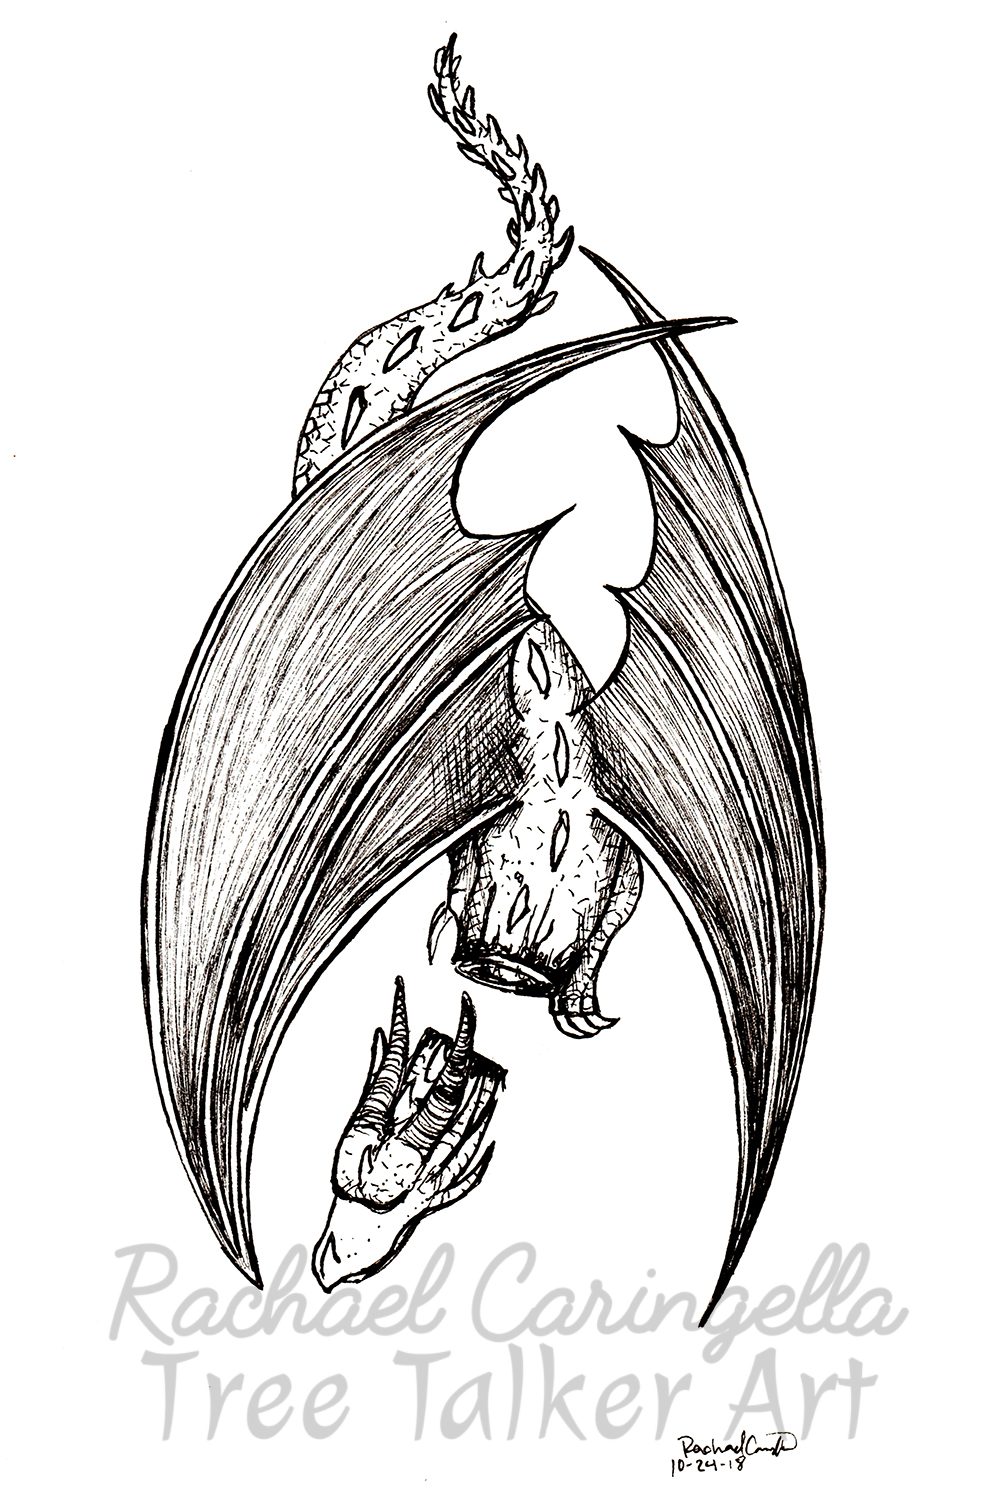 Tree Talker Art Inktober 2018 Illustration of Dead Dragon